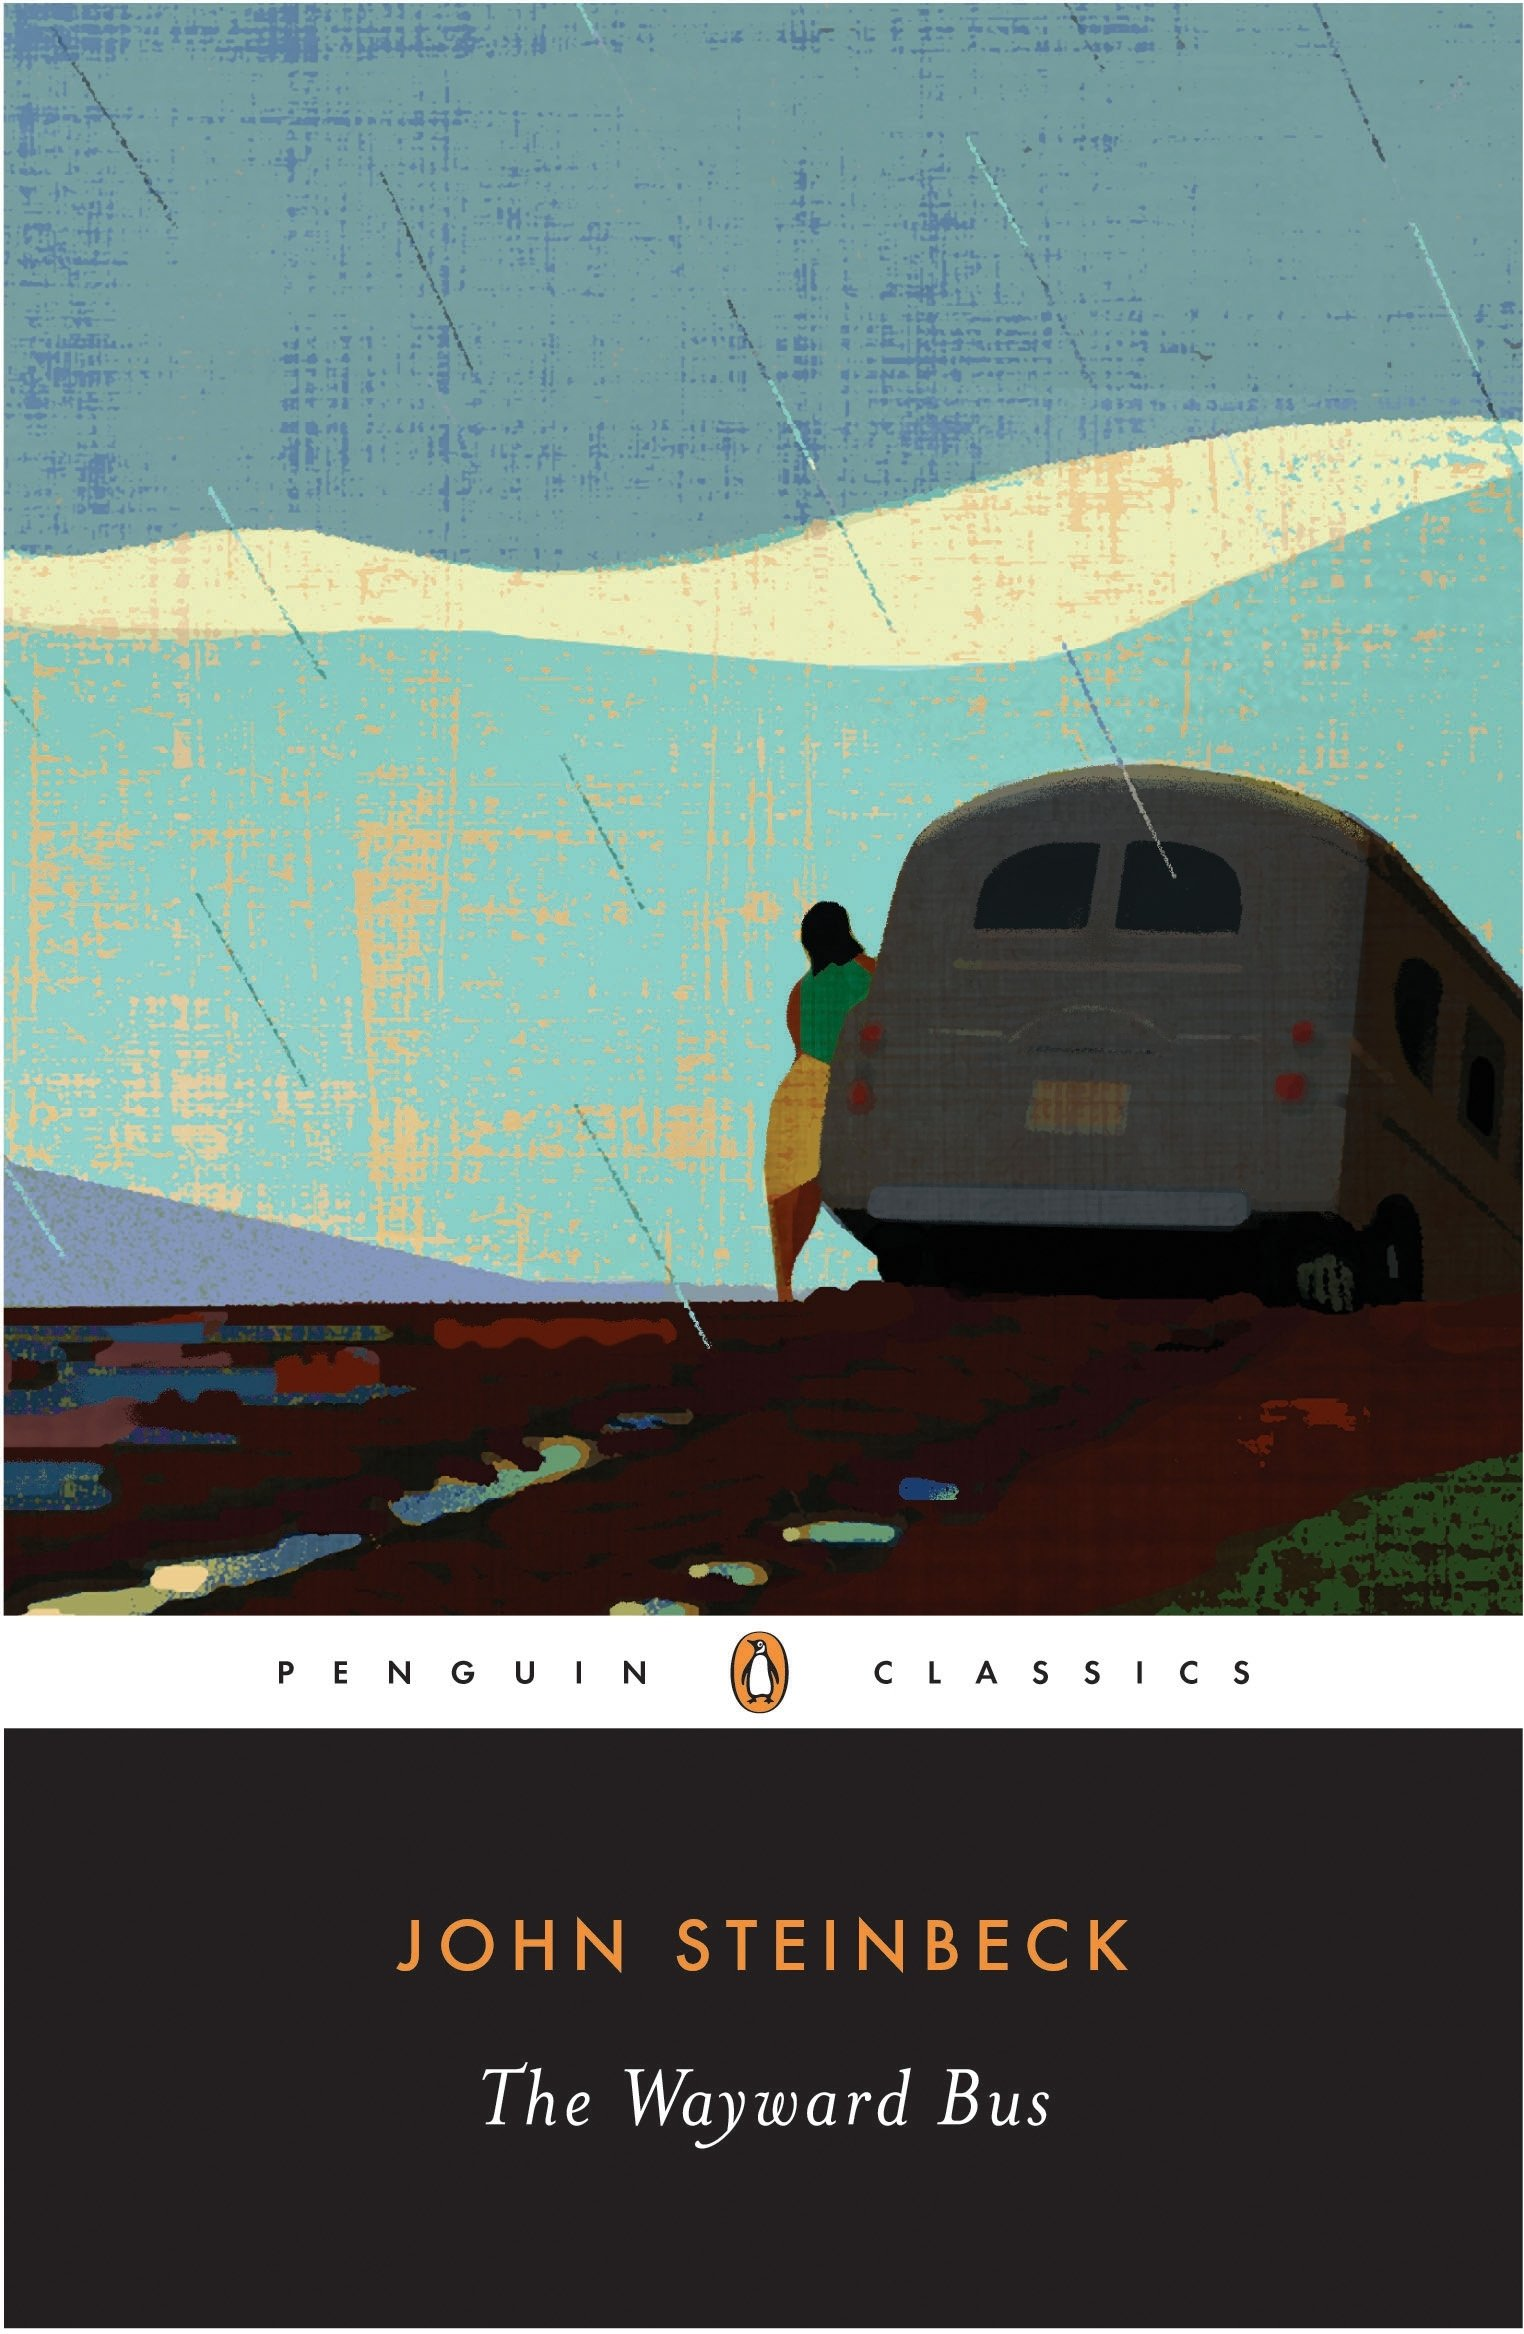 Amazon the wayward bus penguin classics 9780142437872 amazon the wayward bus penguin classics 9780142437872 john steinbeck gary scharnhorst books fandeluxe Images